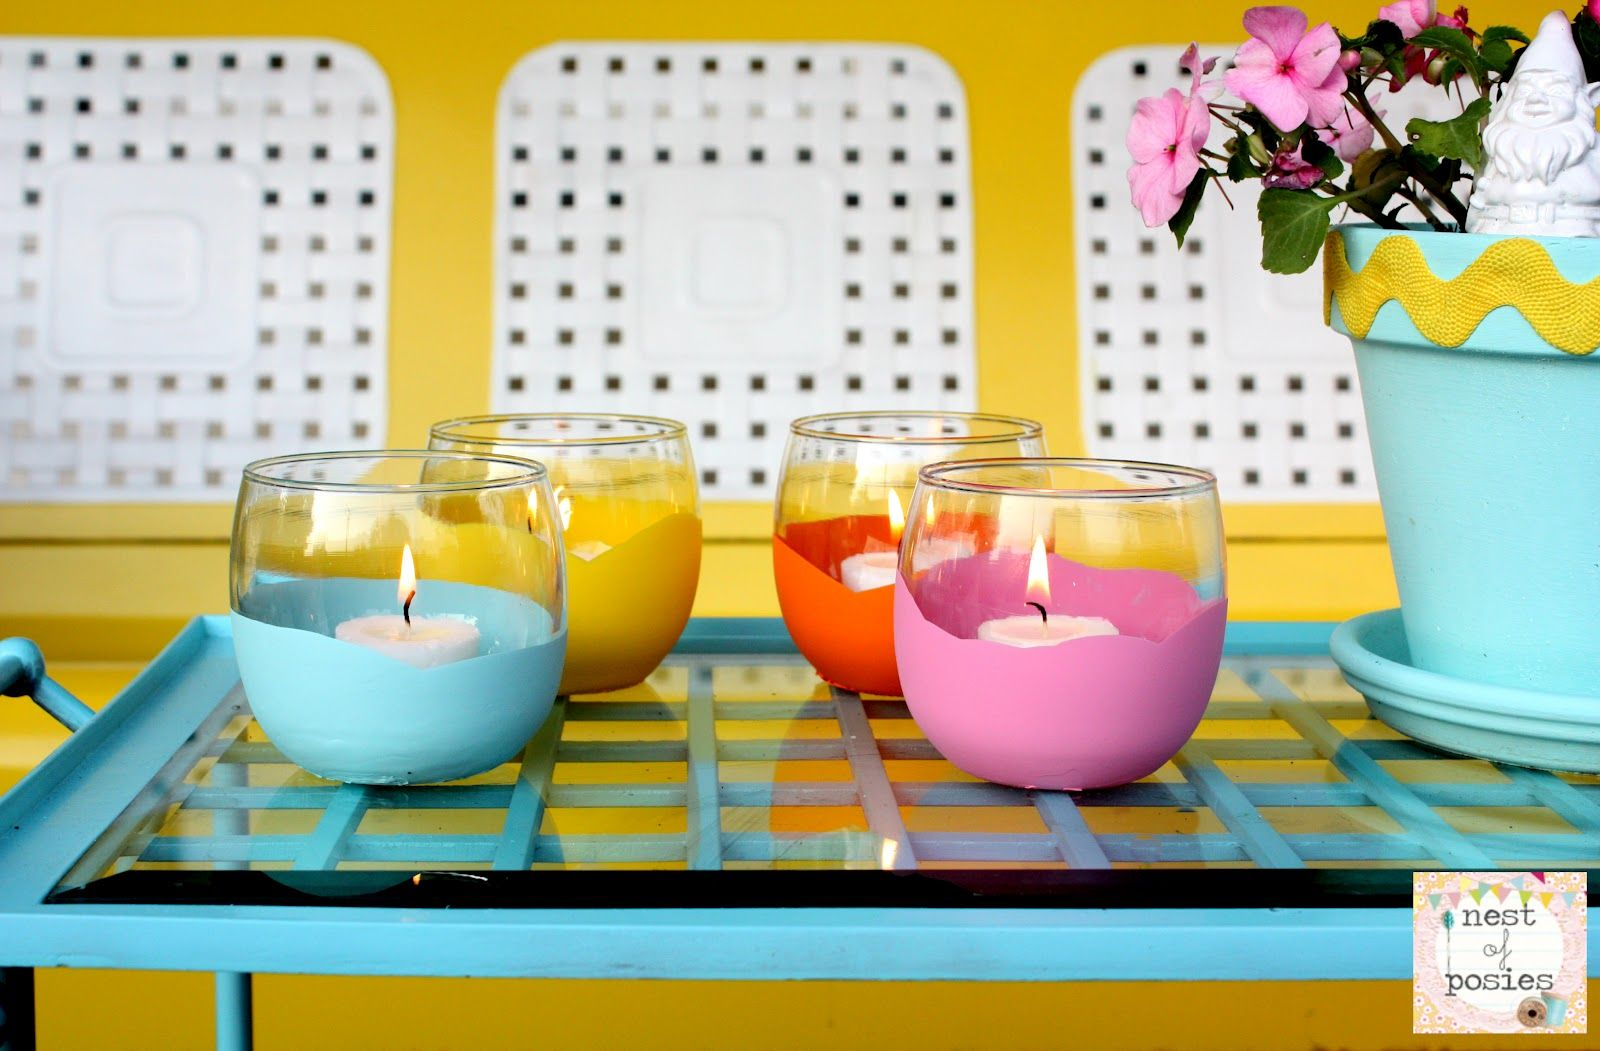 Dipped Votives - Dollar Store Craft Idea.  Perfect for Summer nights!  via Nest of Posies